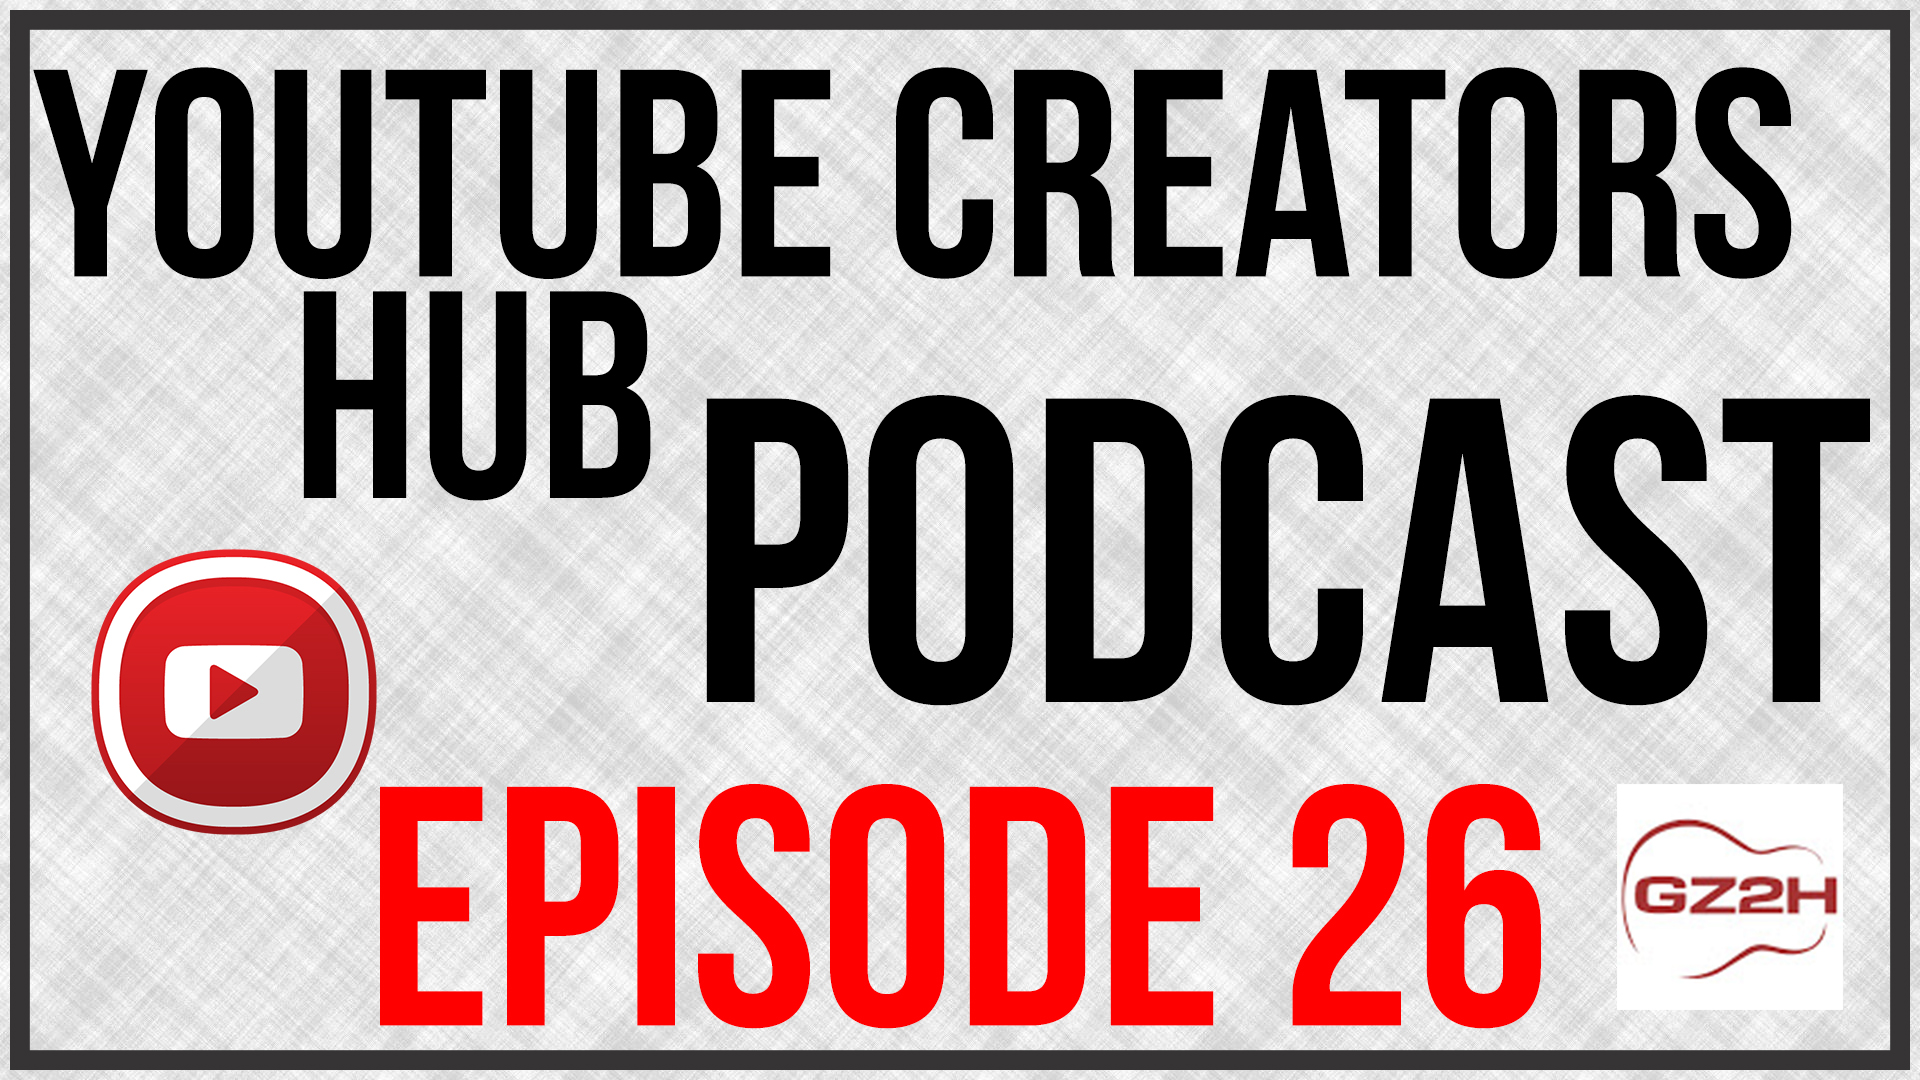 YouTube Creators Hub Podcast Episode 26